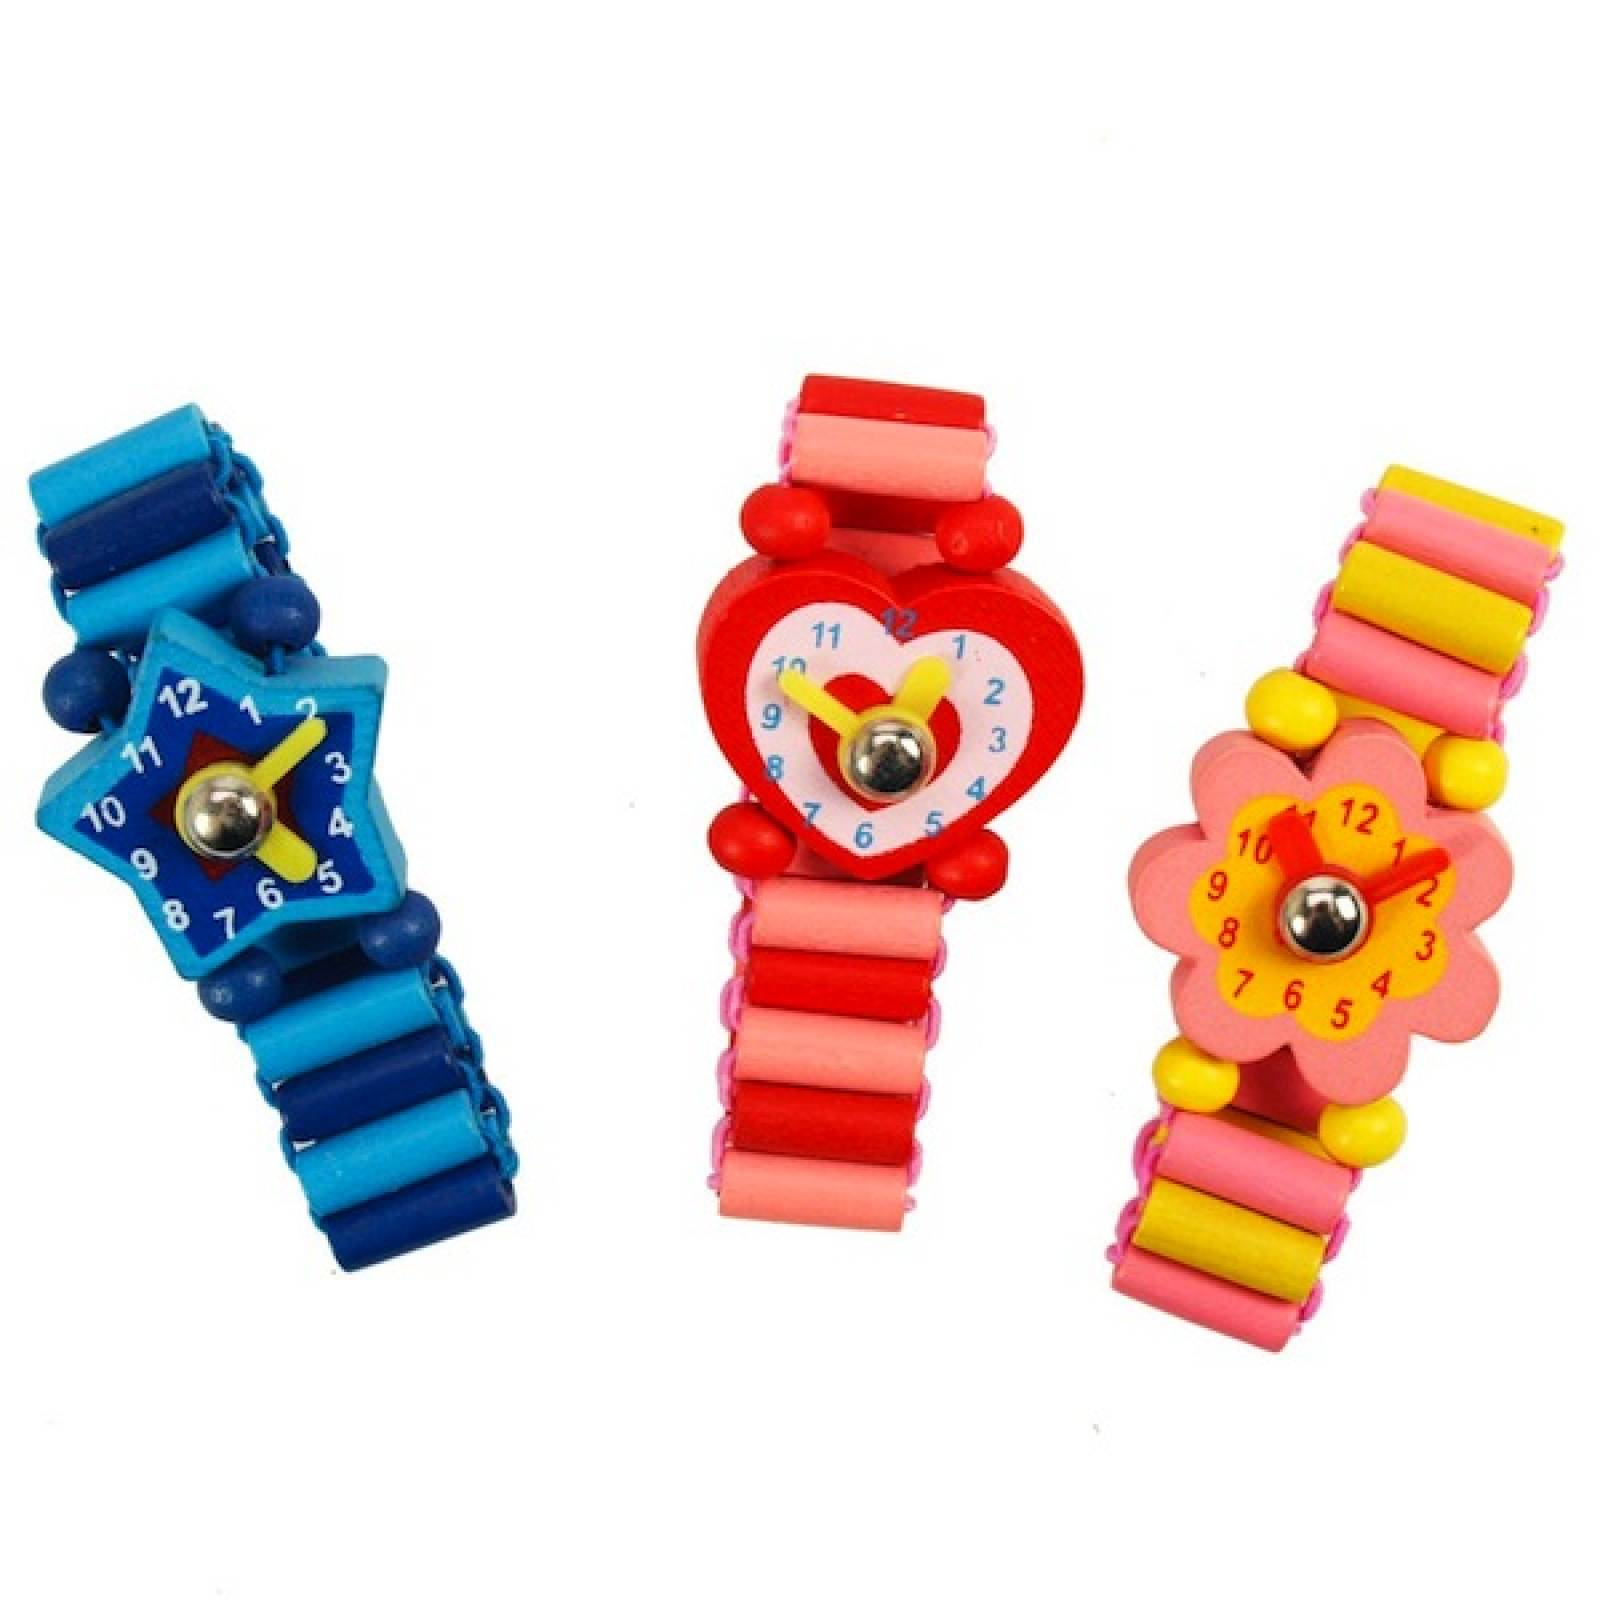 Wooden Watches With Shaped Face And Moveable Hands.